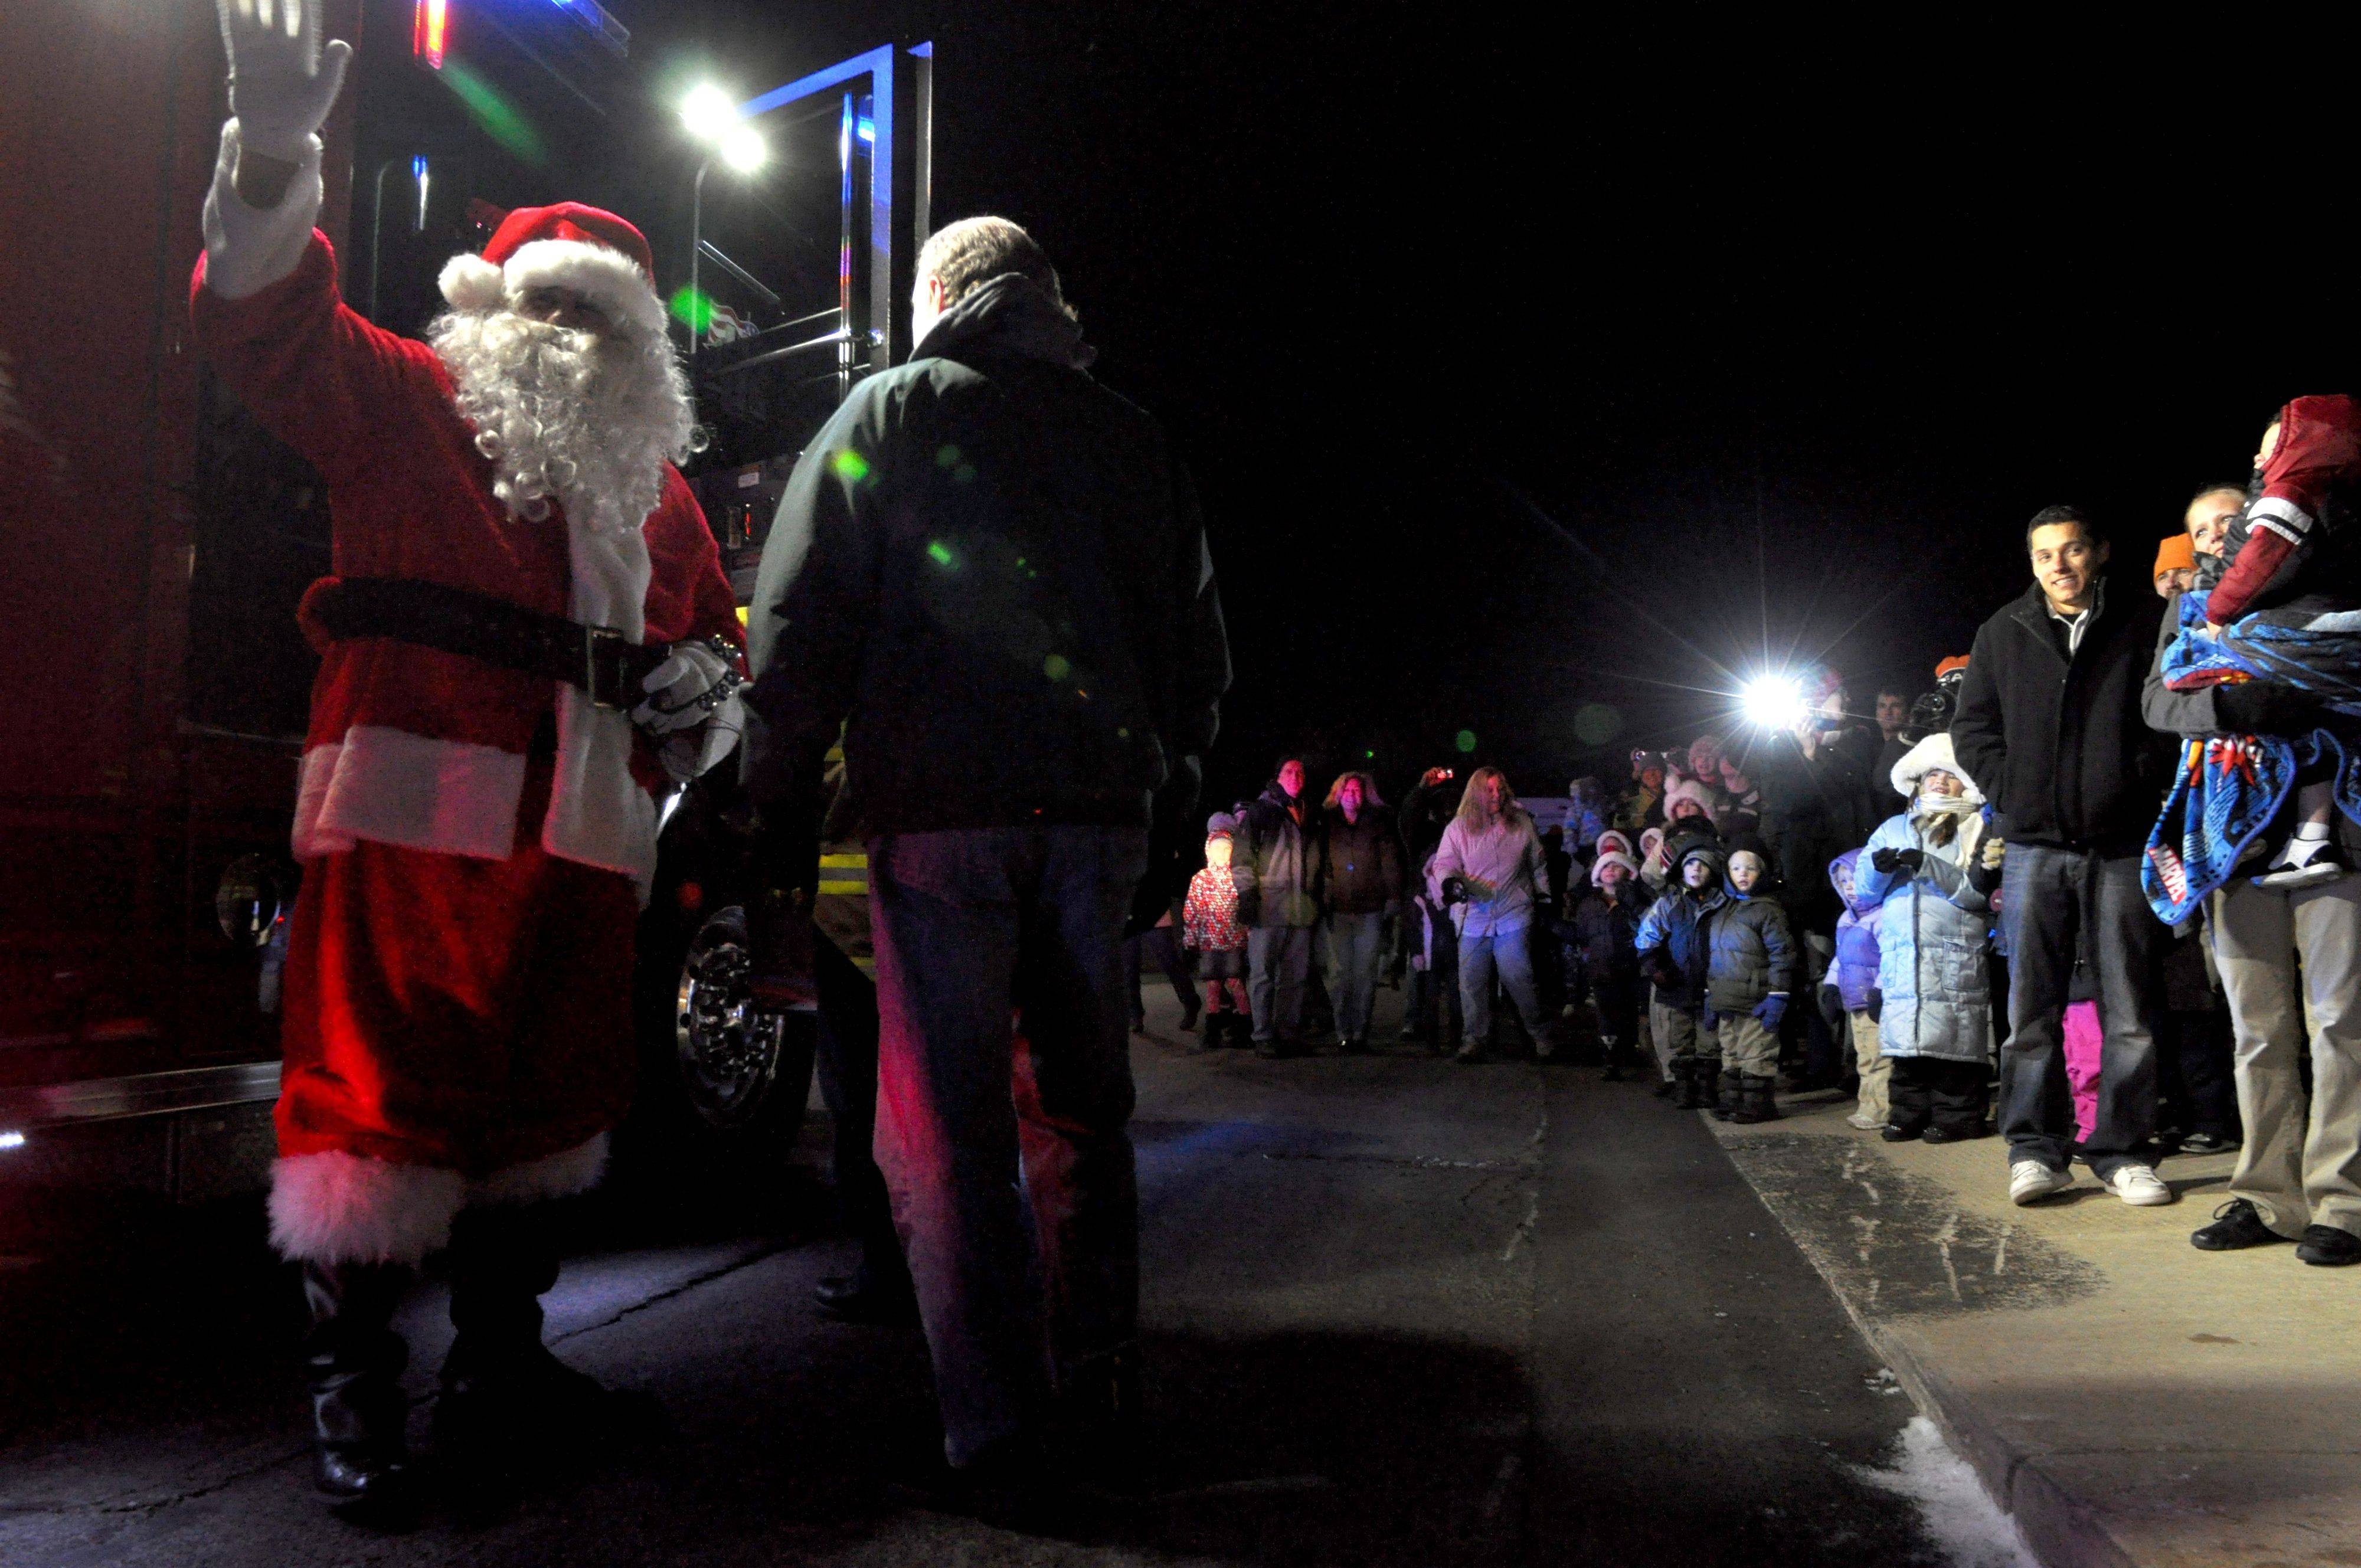 Village President Ed Plaza escorts Santa and Mrs. Claus as they arrive via fire truck at the Festival of Trees gathering Friday night at the Village Hall in Lake in the Hills.